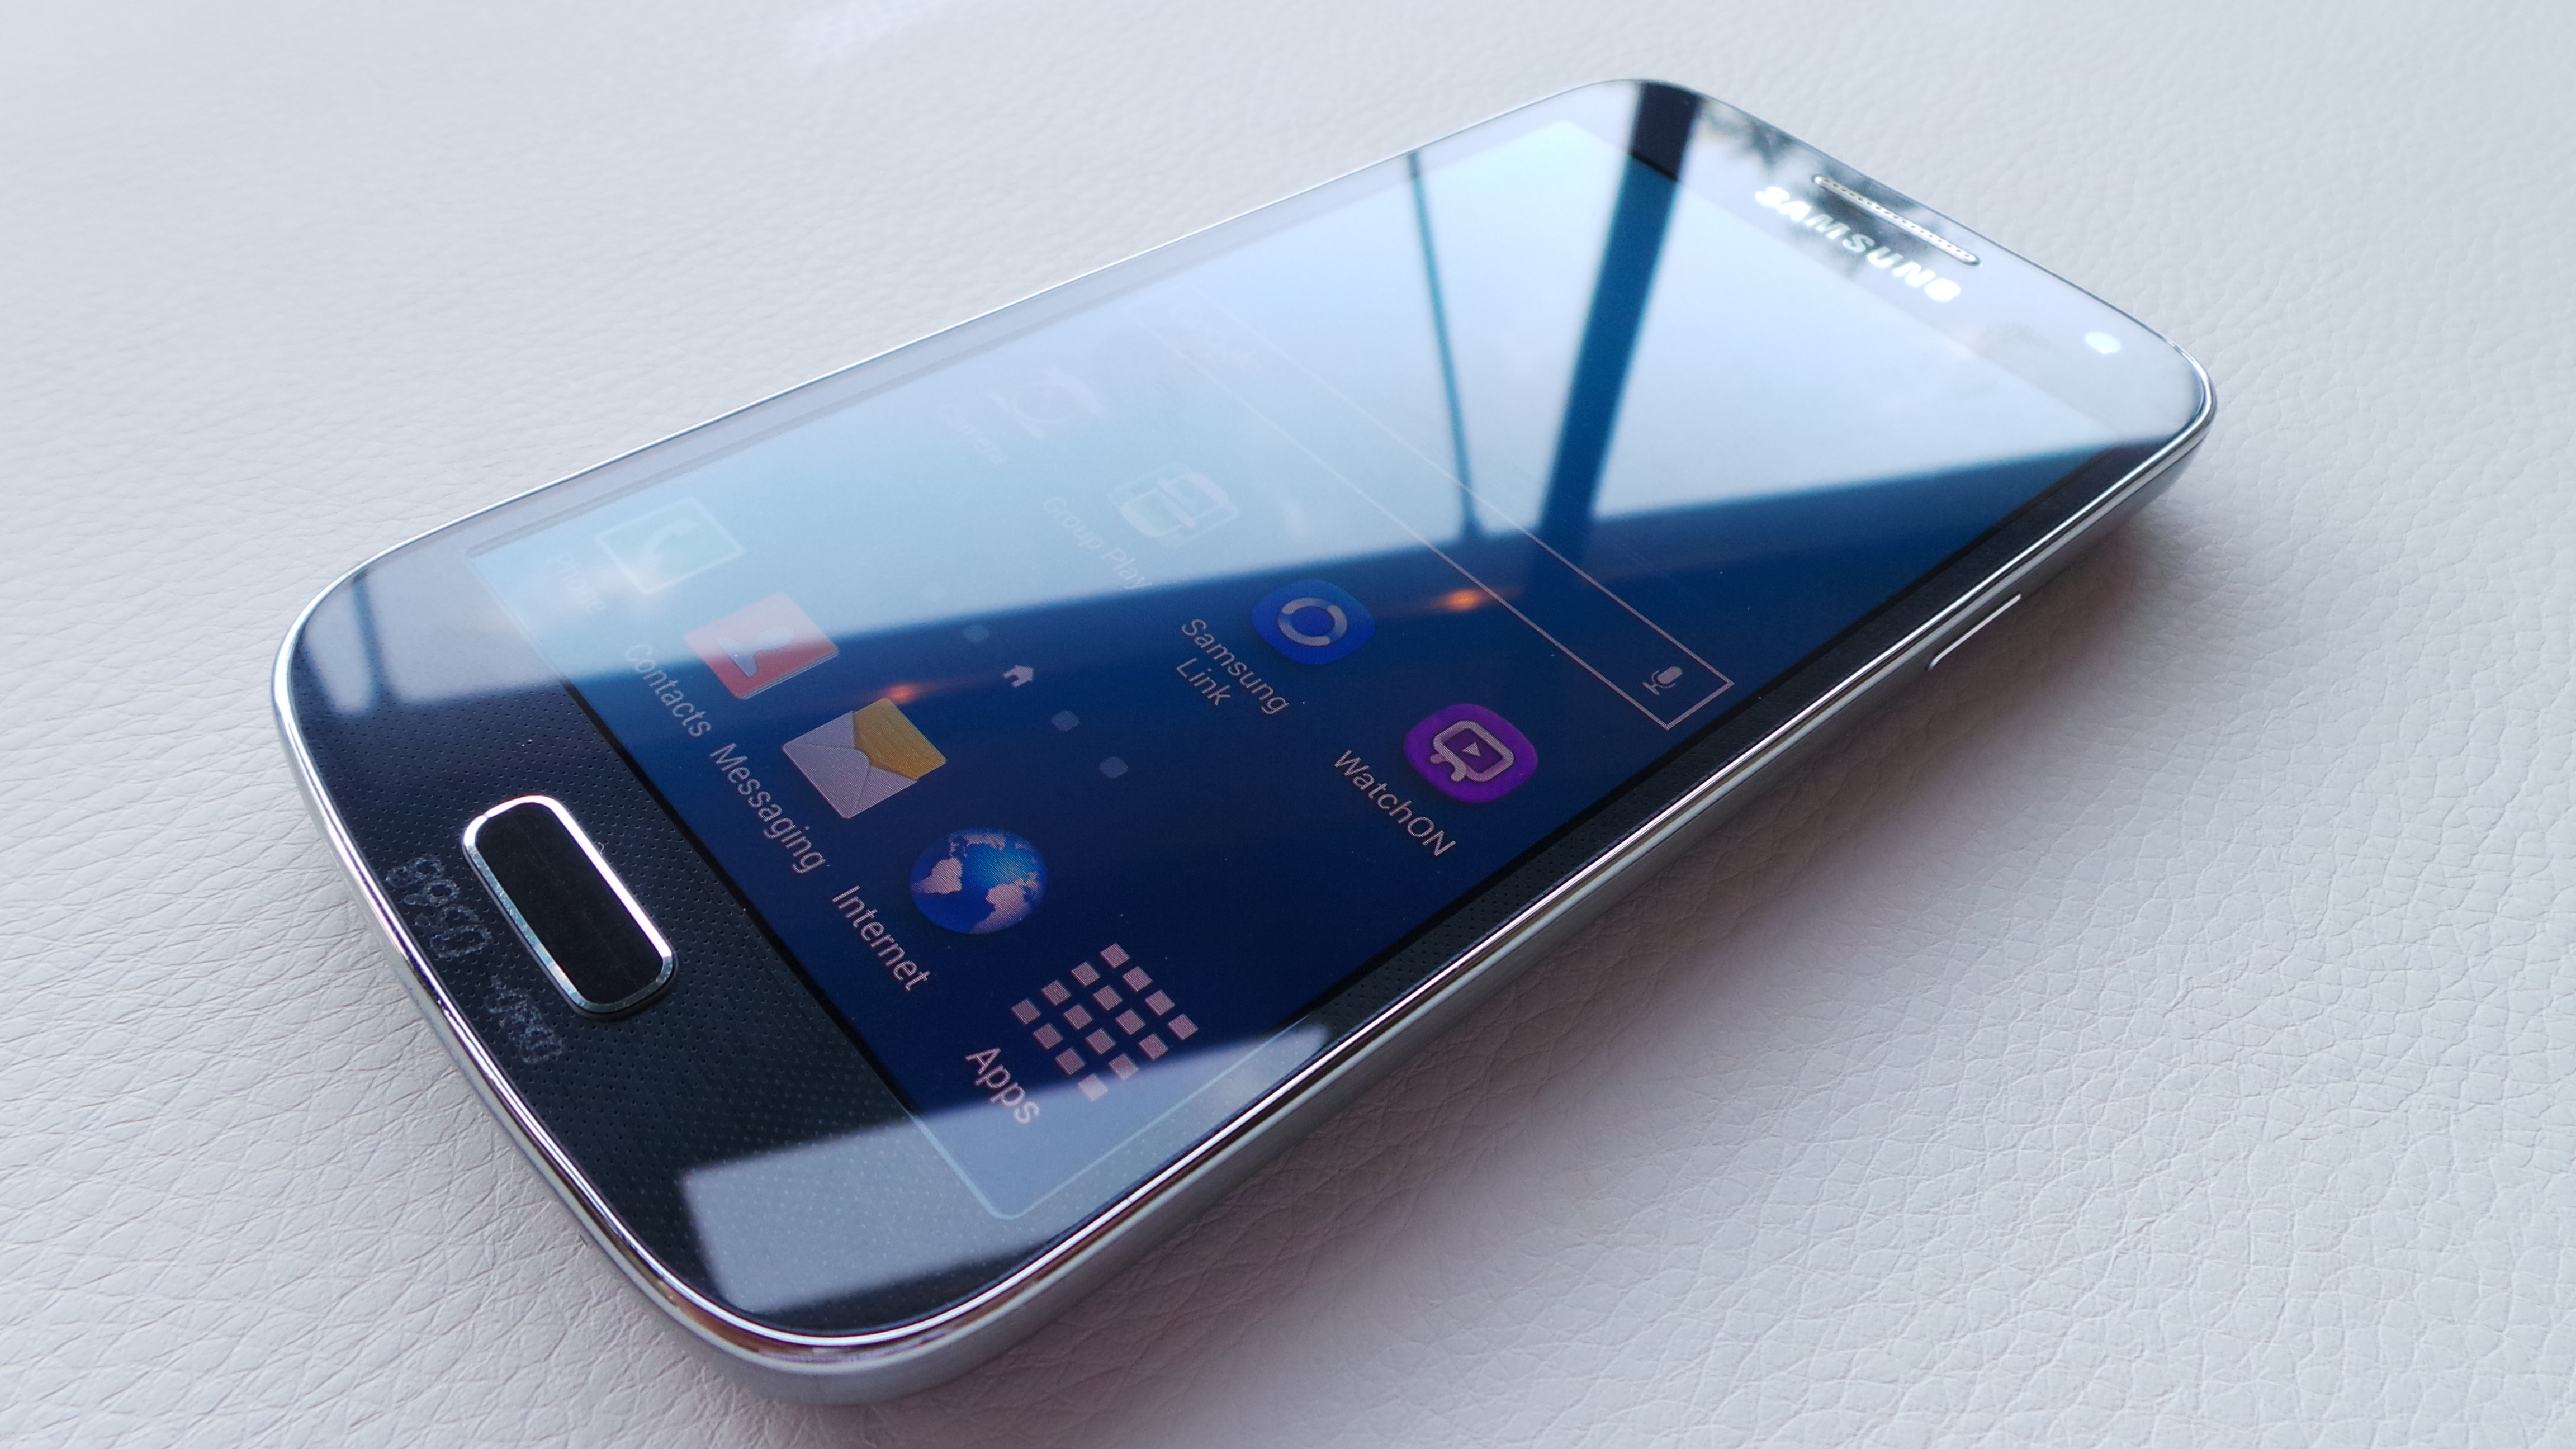 Samsung Galaxy S4 Mini sistema Android